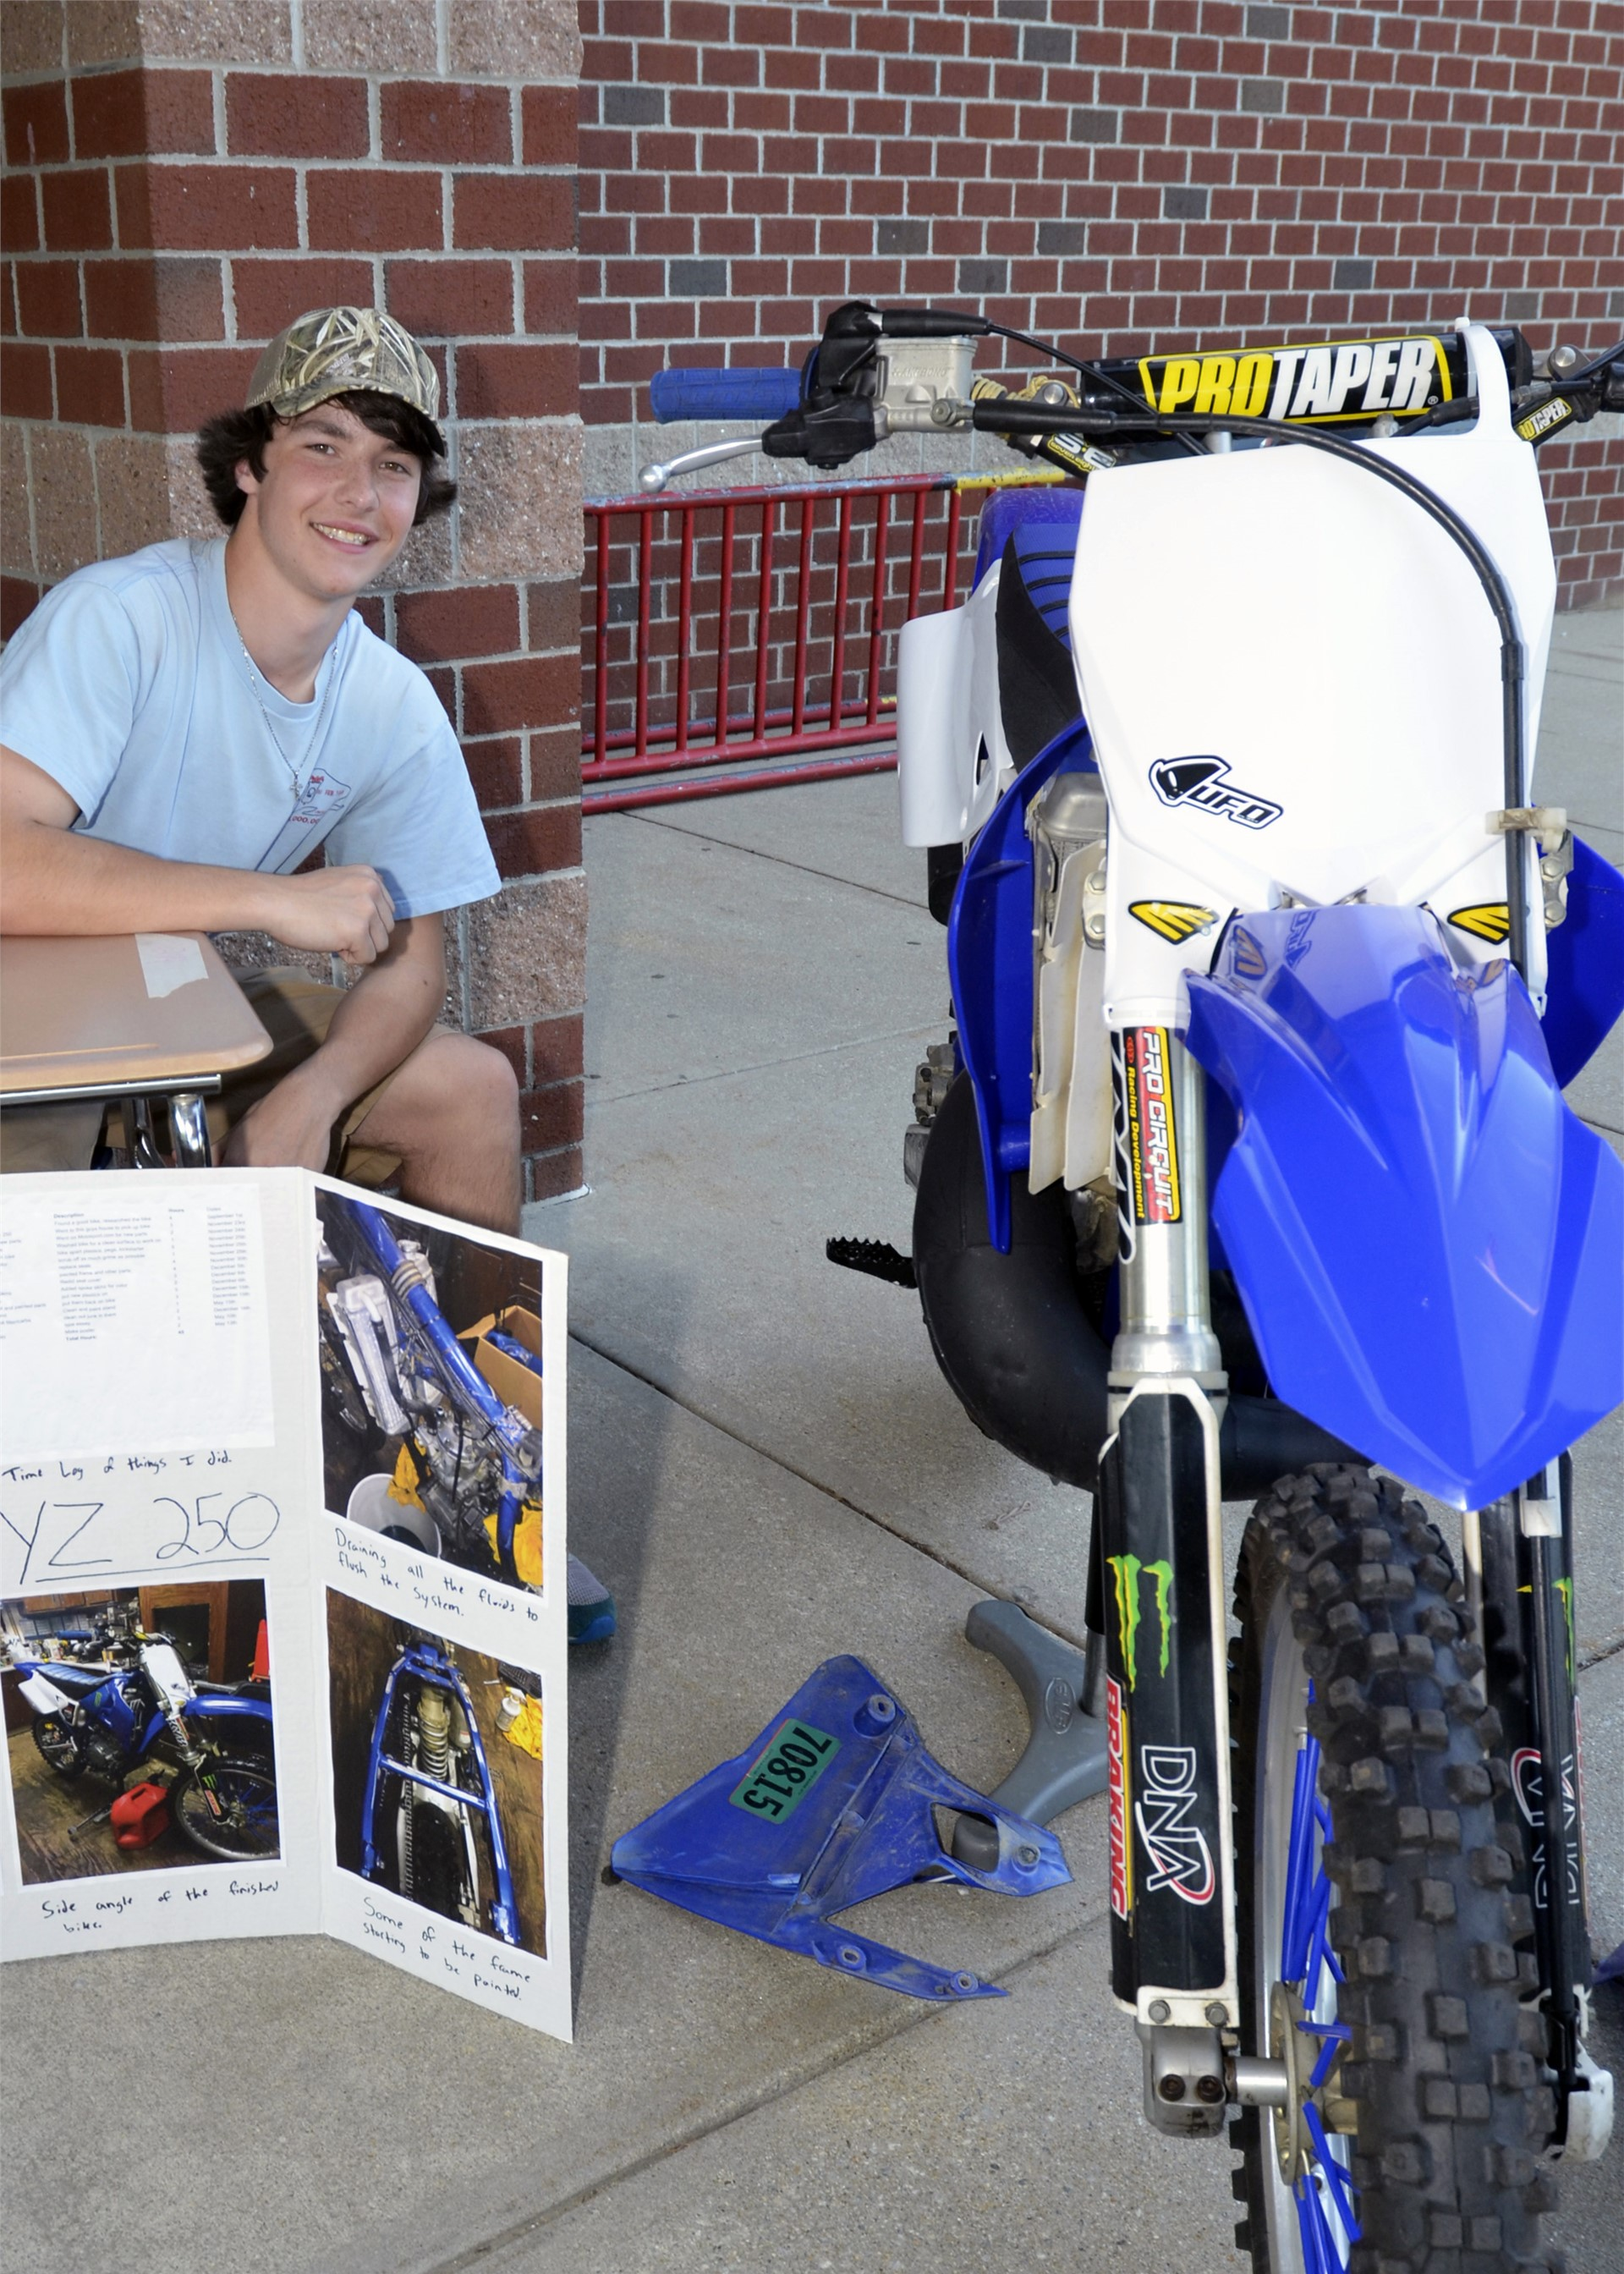 D. Mason rebuilt a dirt bike for off-road racing.